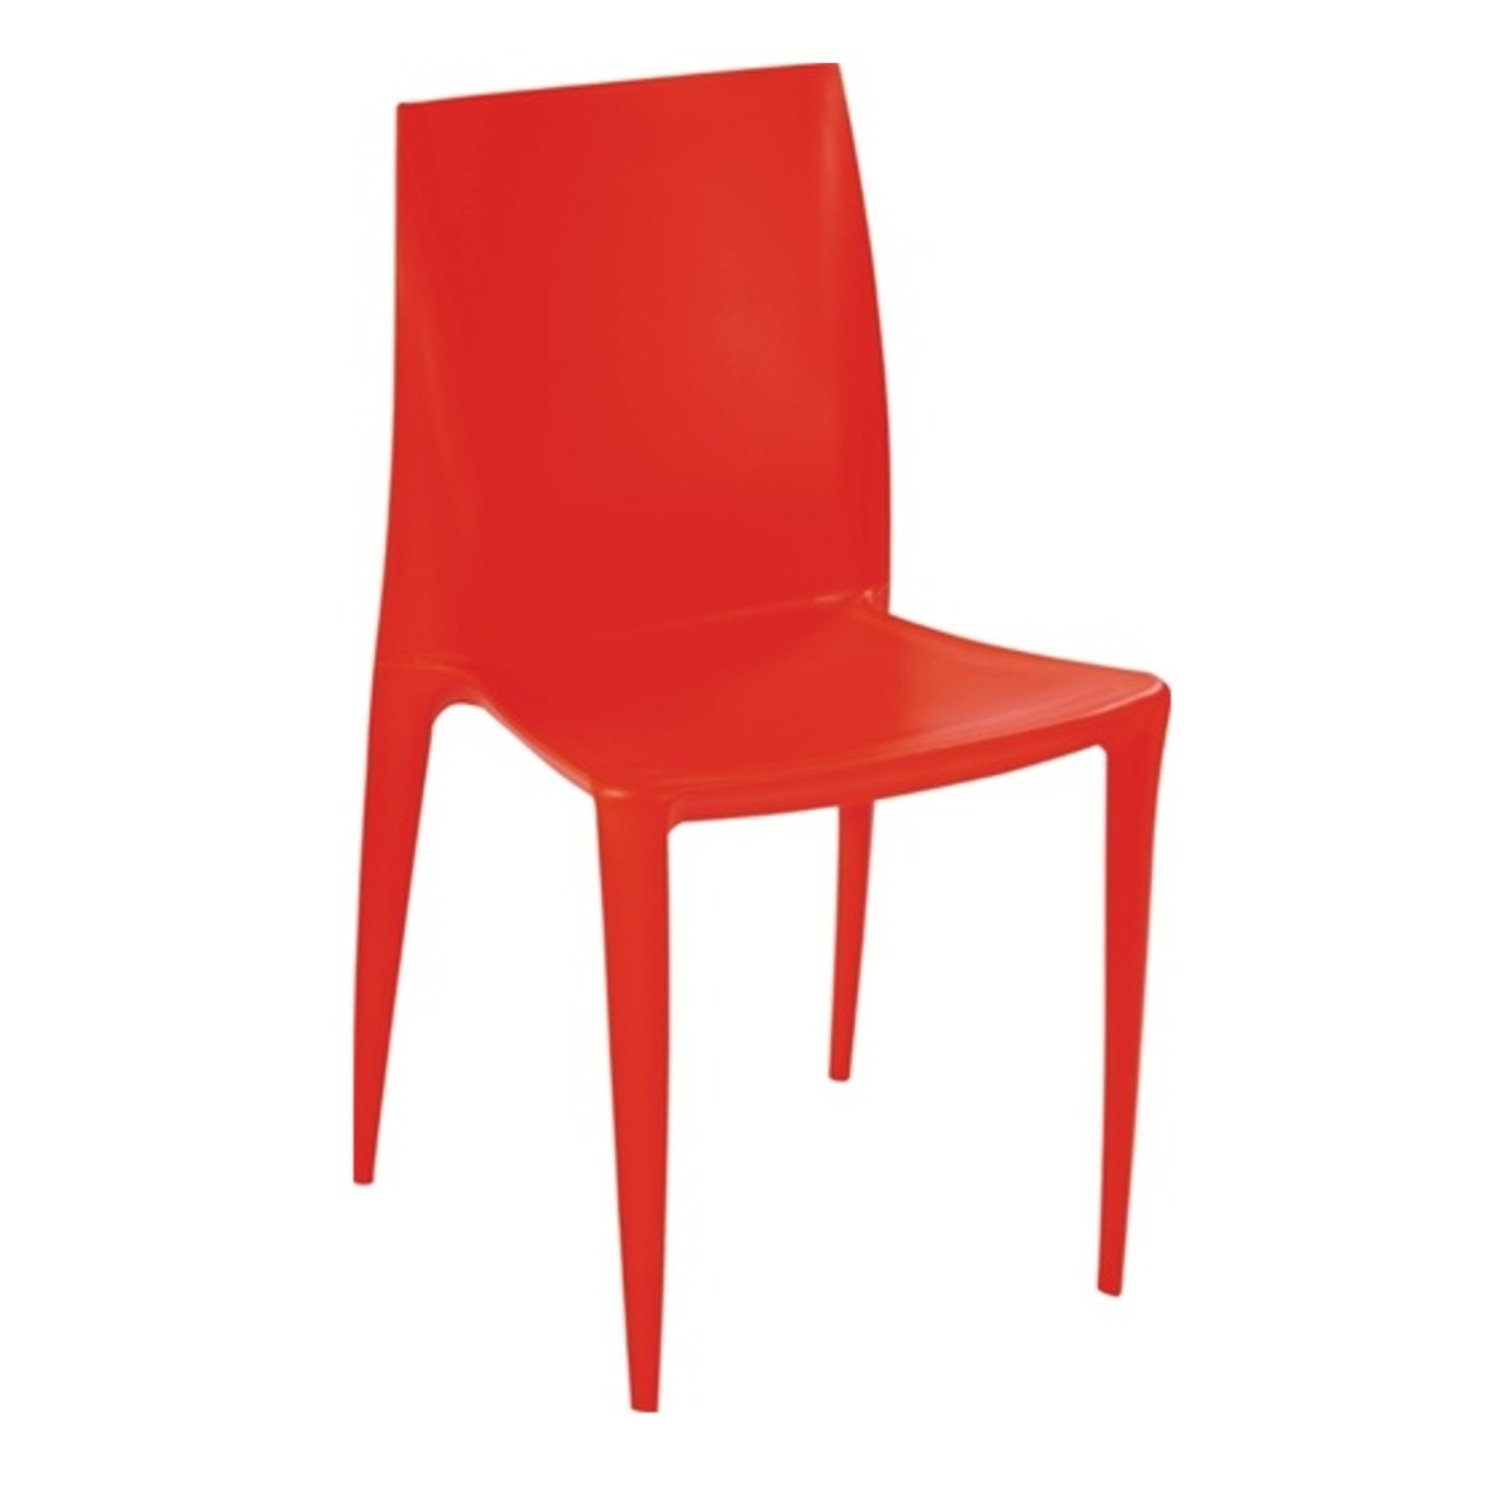 Dining Chair In Square-Shaped Orange Finish - image-1